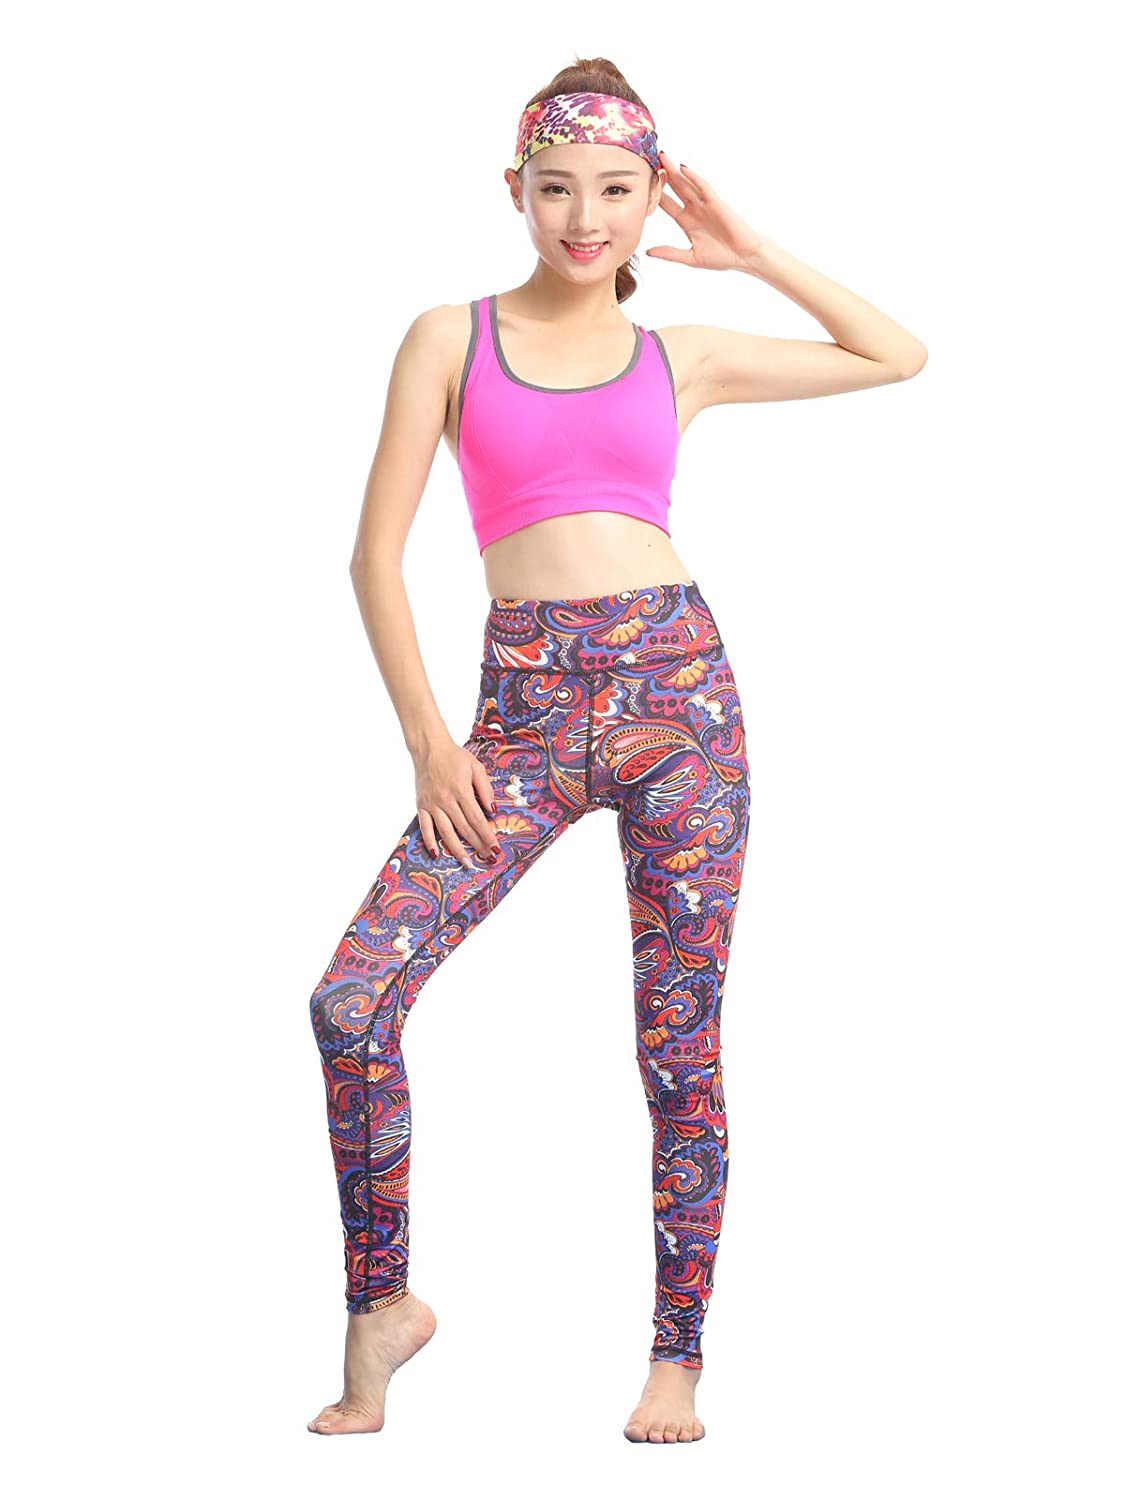 K Red Butterfly FINEMORE Women Printed Yoga Pants Stretchy Pilates Workout Sport Yoga Leggings